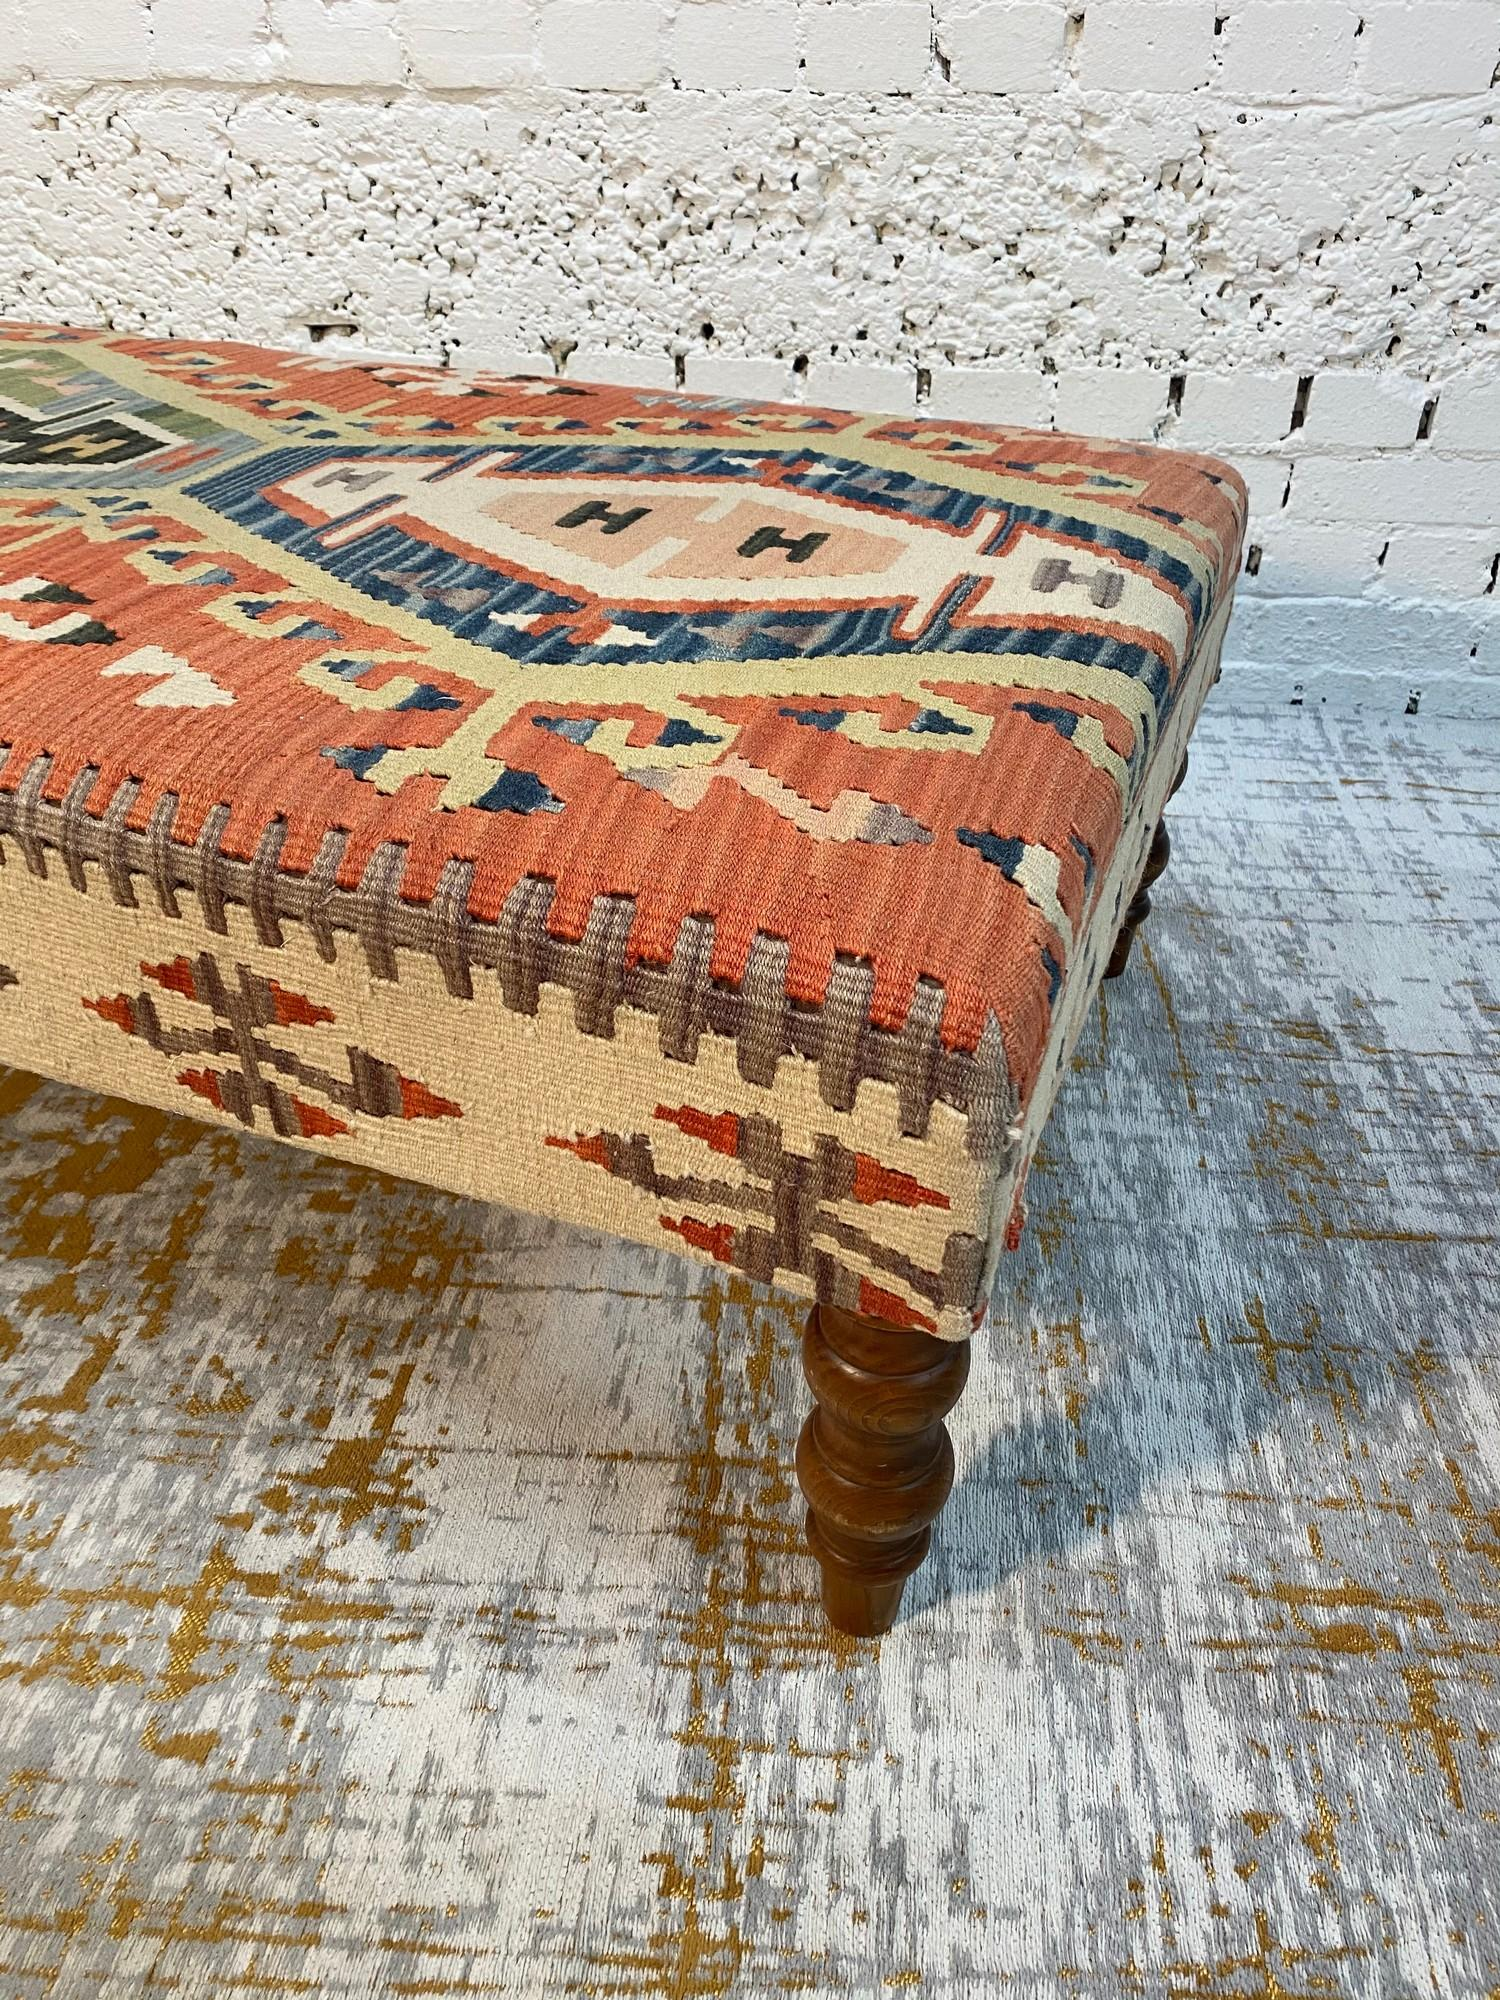 KILIM HEARTH STOOL, George Smith style, raised on turned supports, 40cm H x 120cm x 70cm. - Image 4 of 4